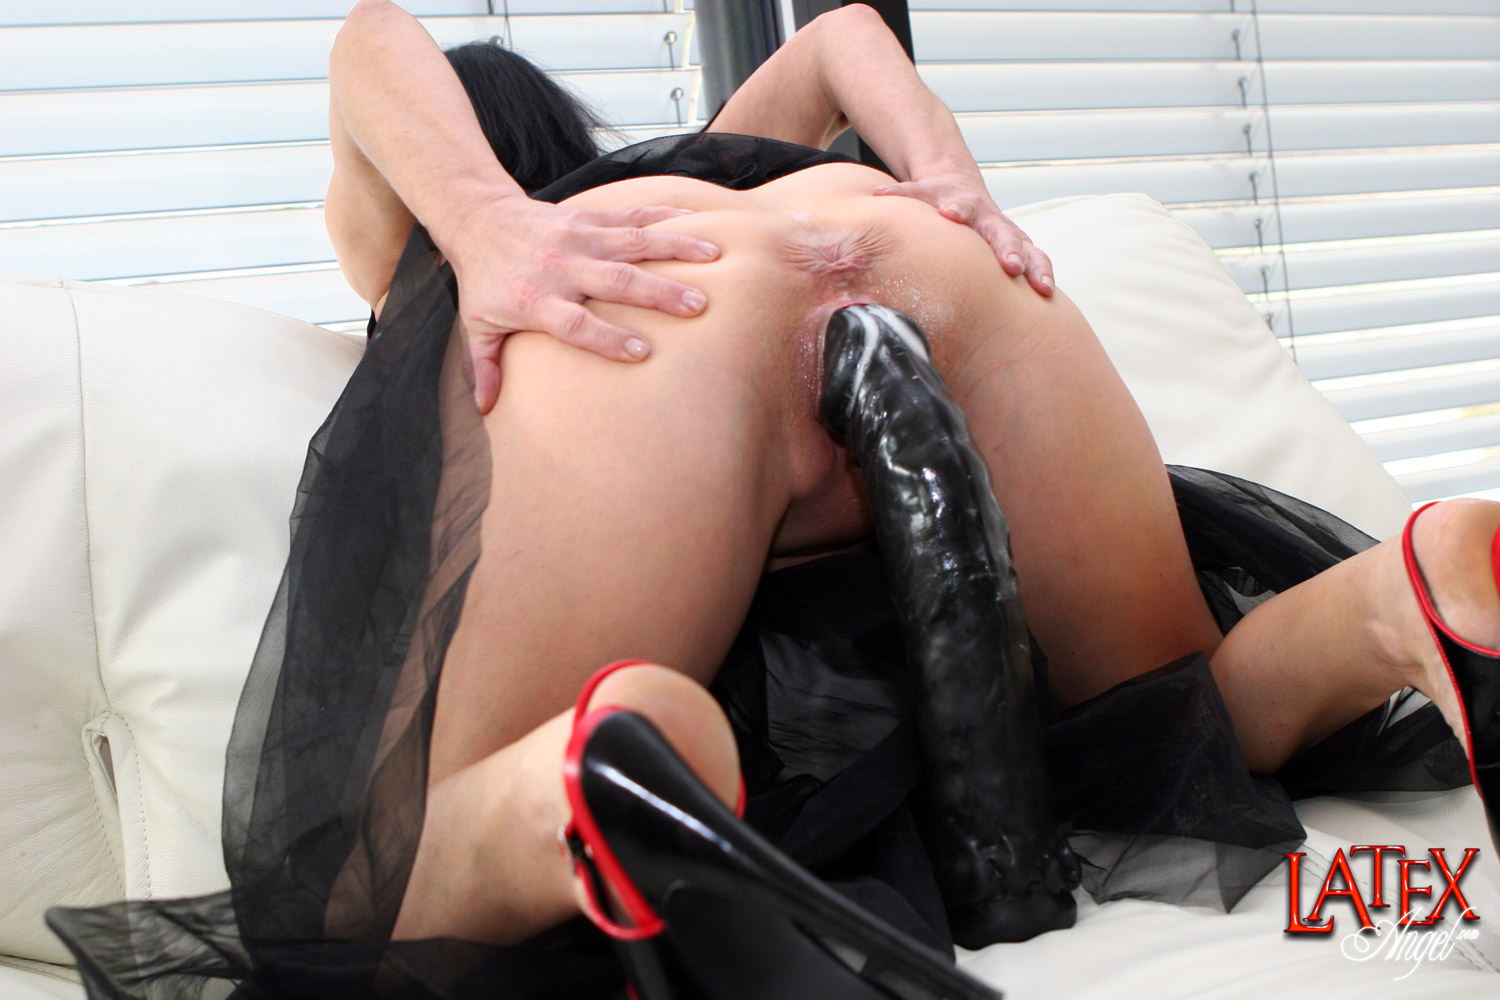 hotwife forum dildo latex